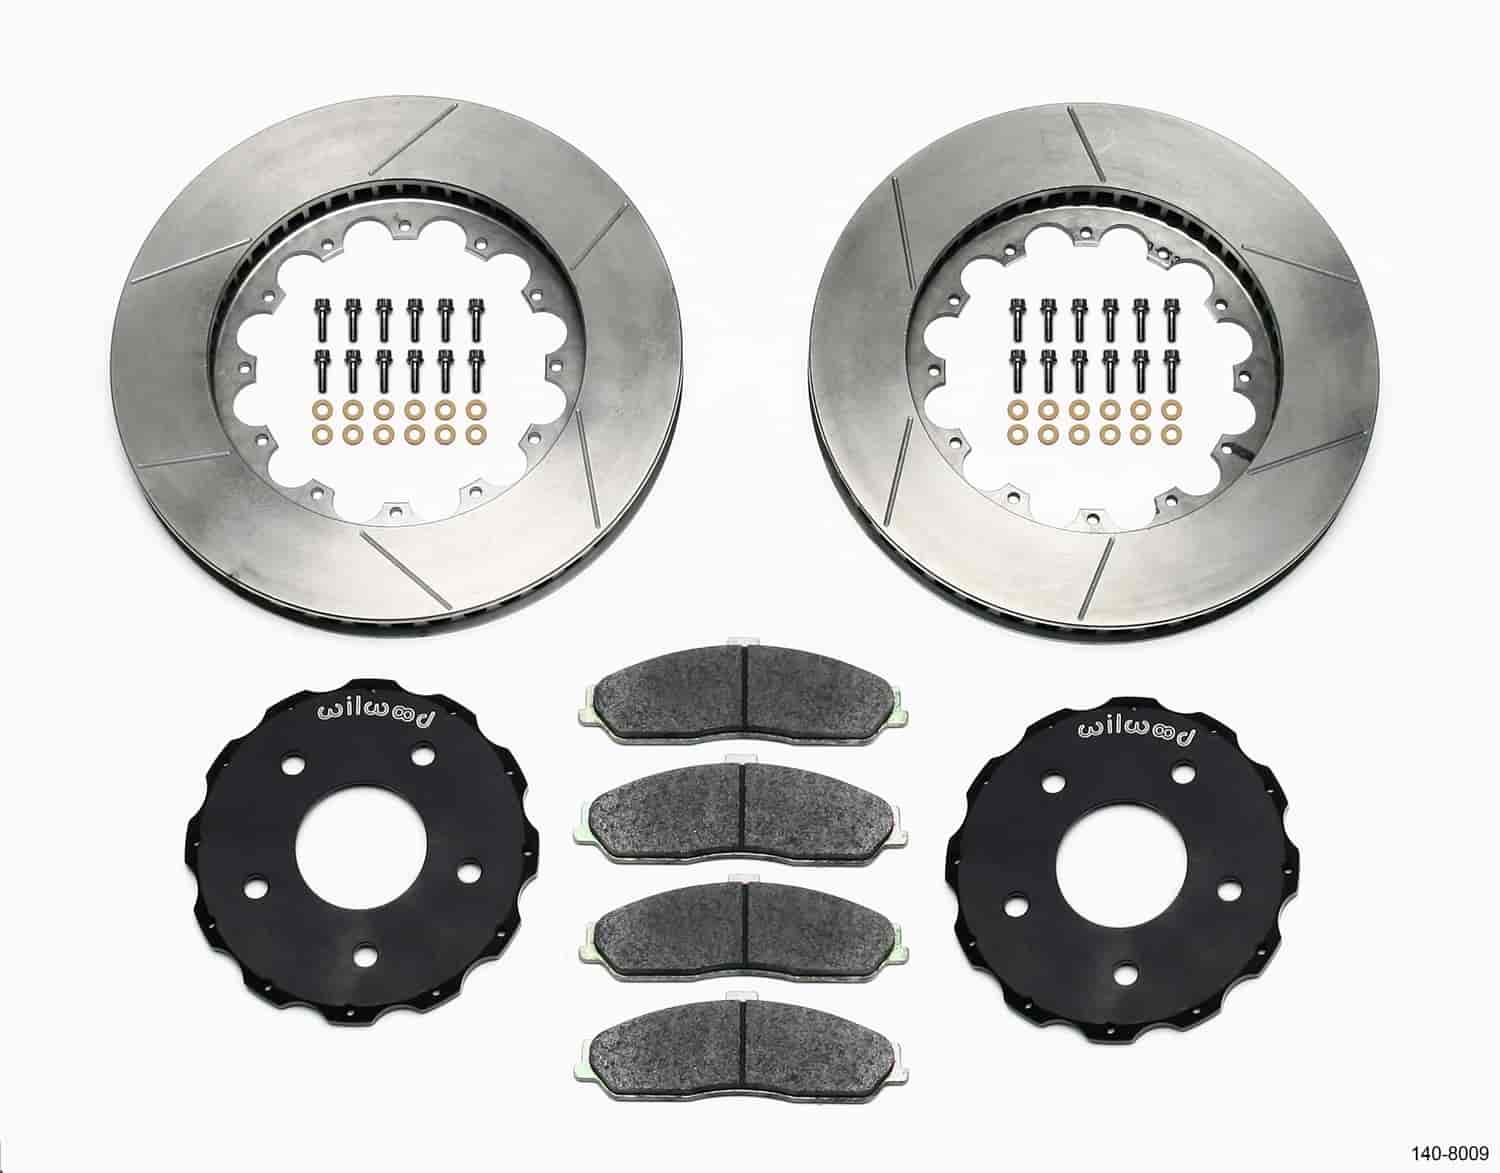 Wilwood 140-8009 - Wilwood ProMatrix Brake Rotor Upgrade Kits